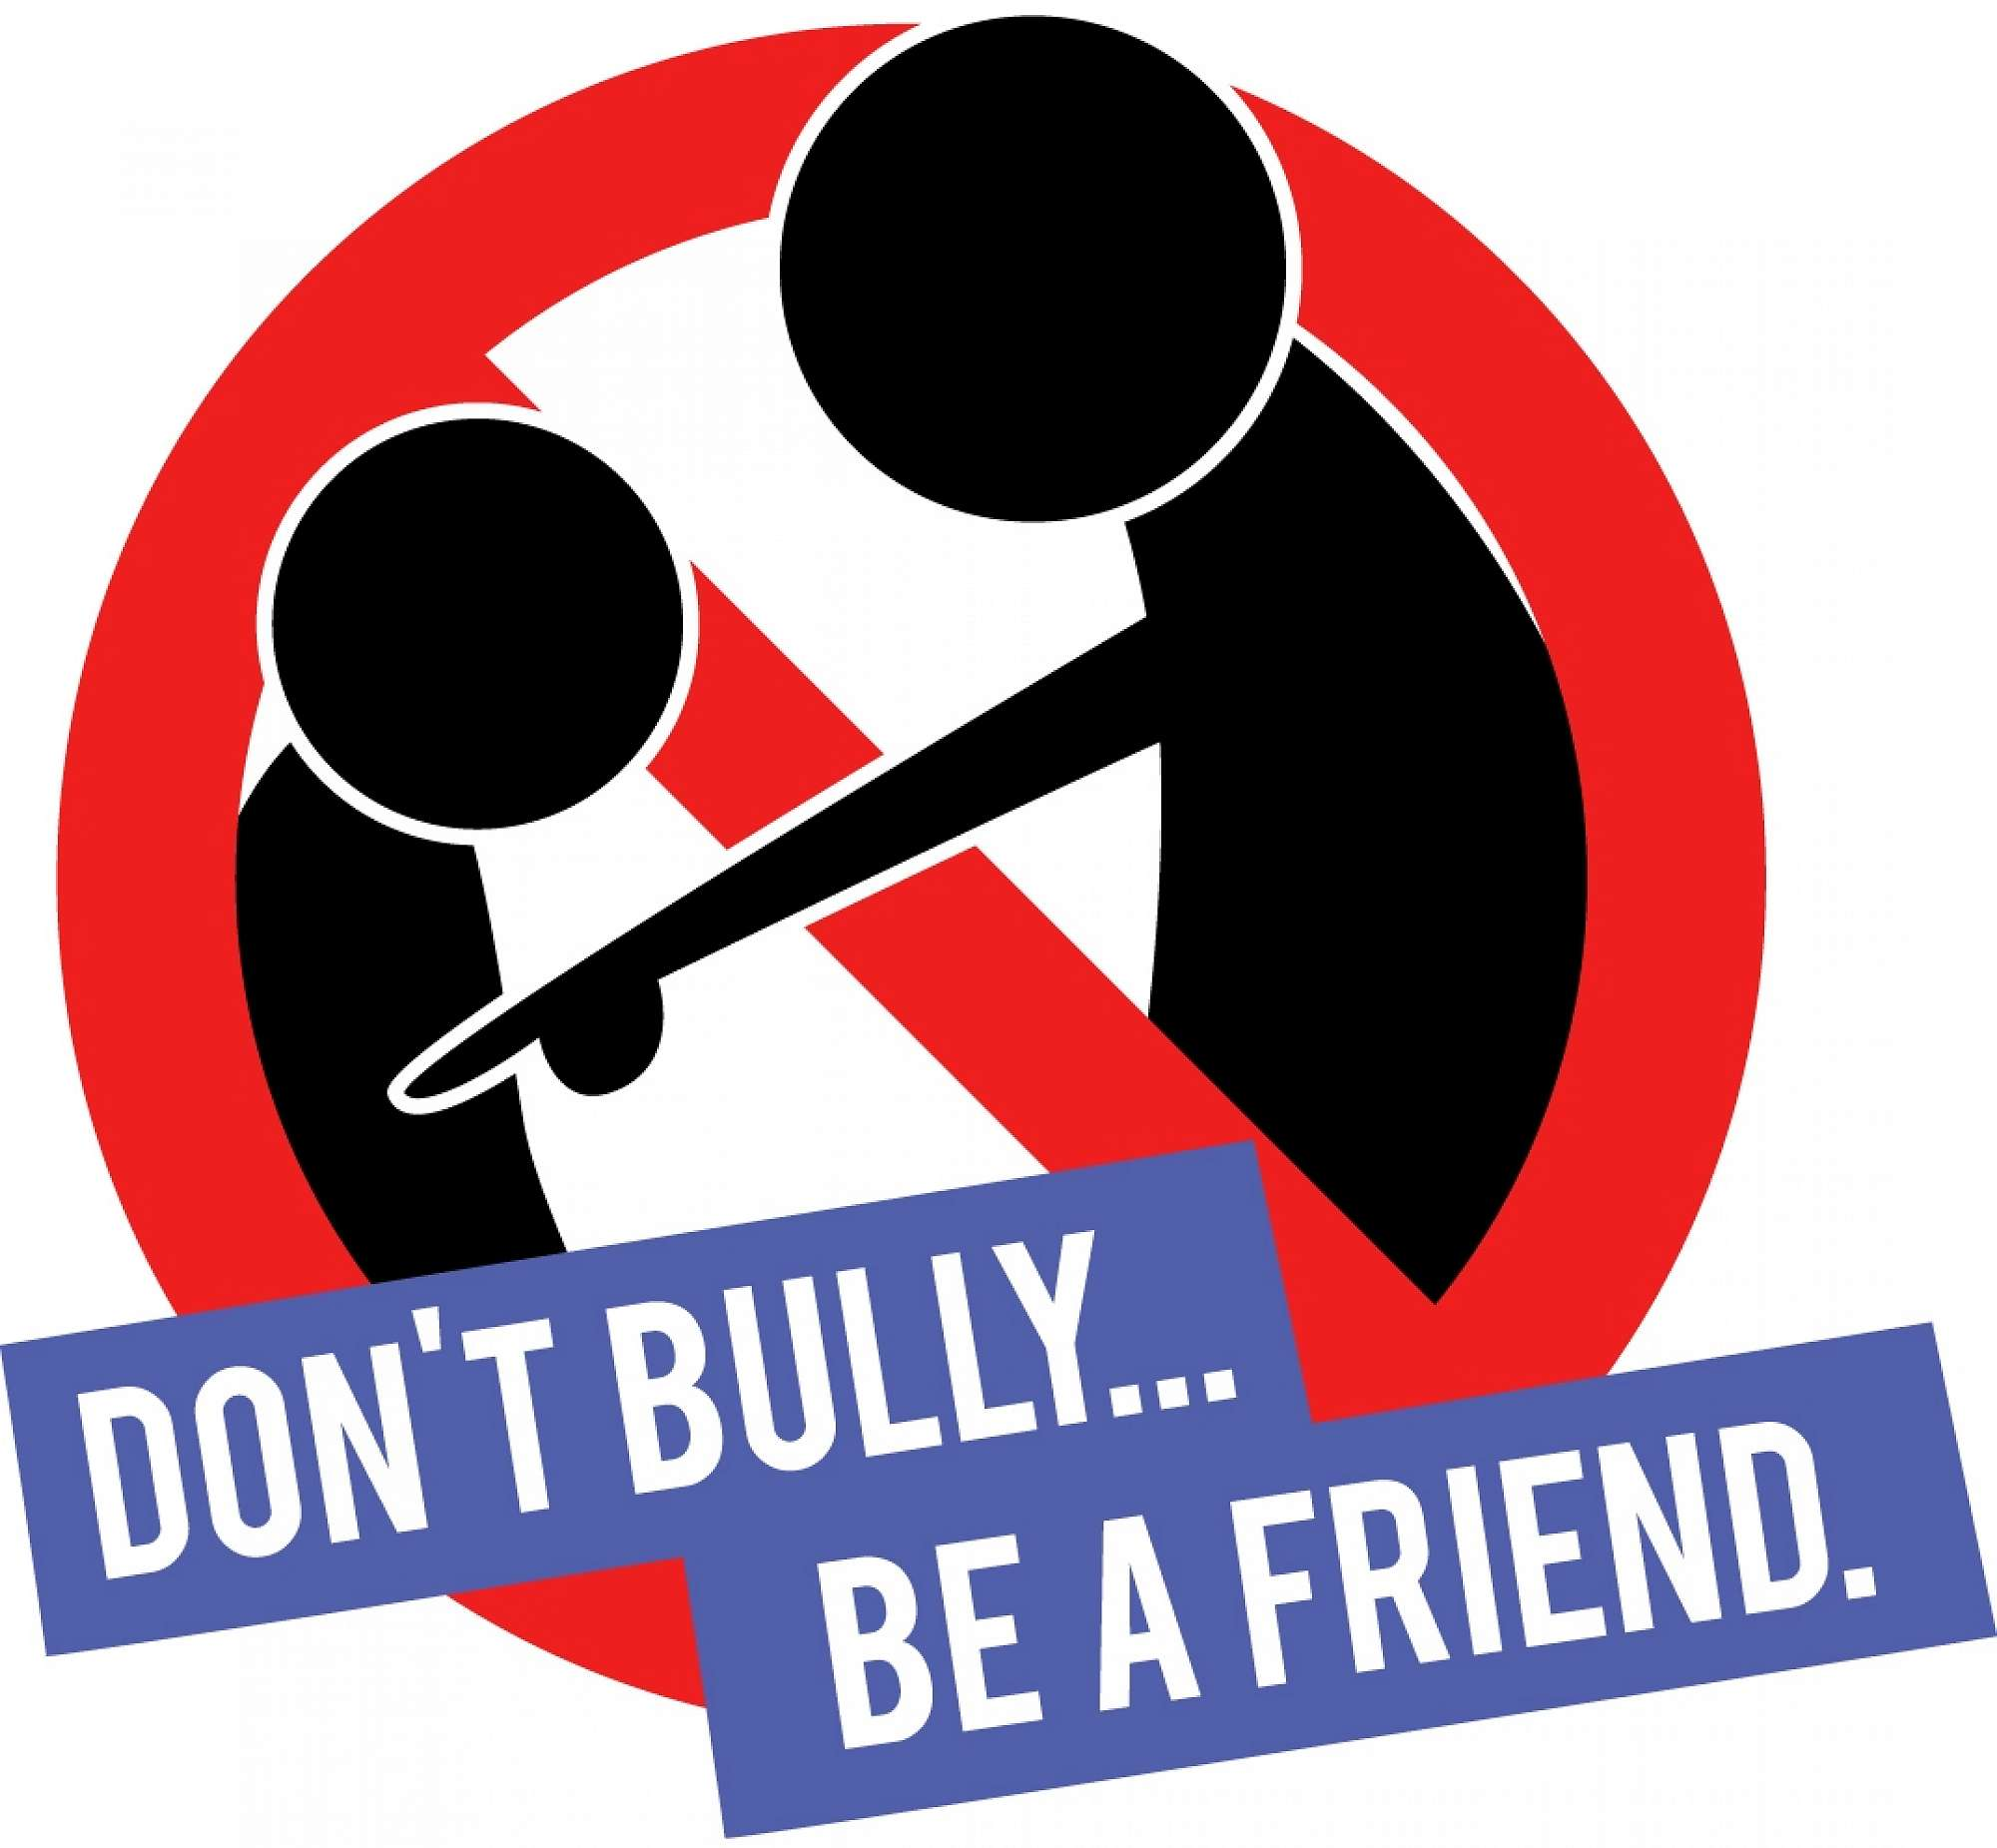 Bully clipart bullying prevention. Your opportunity to have